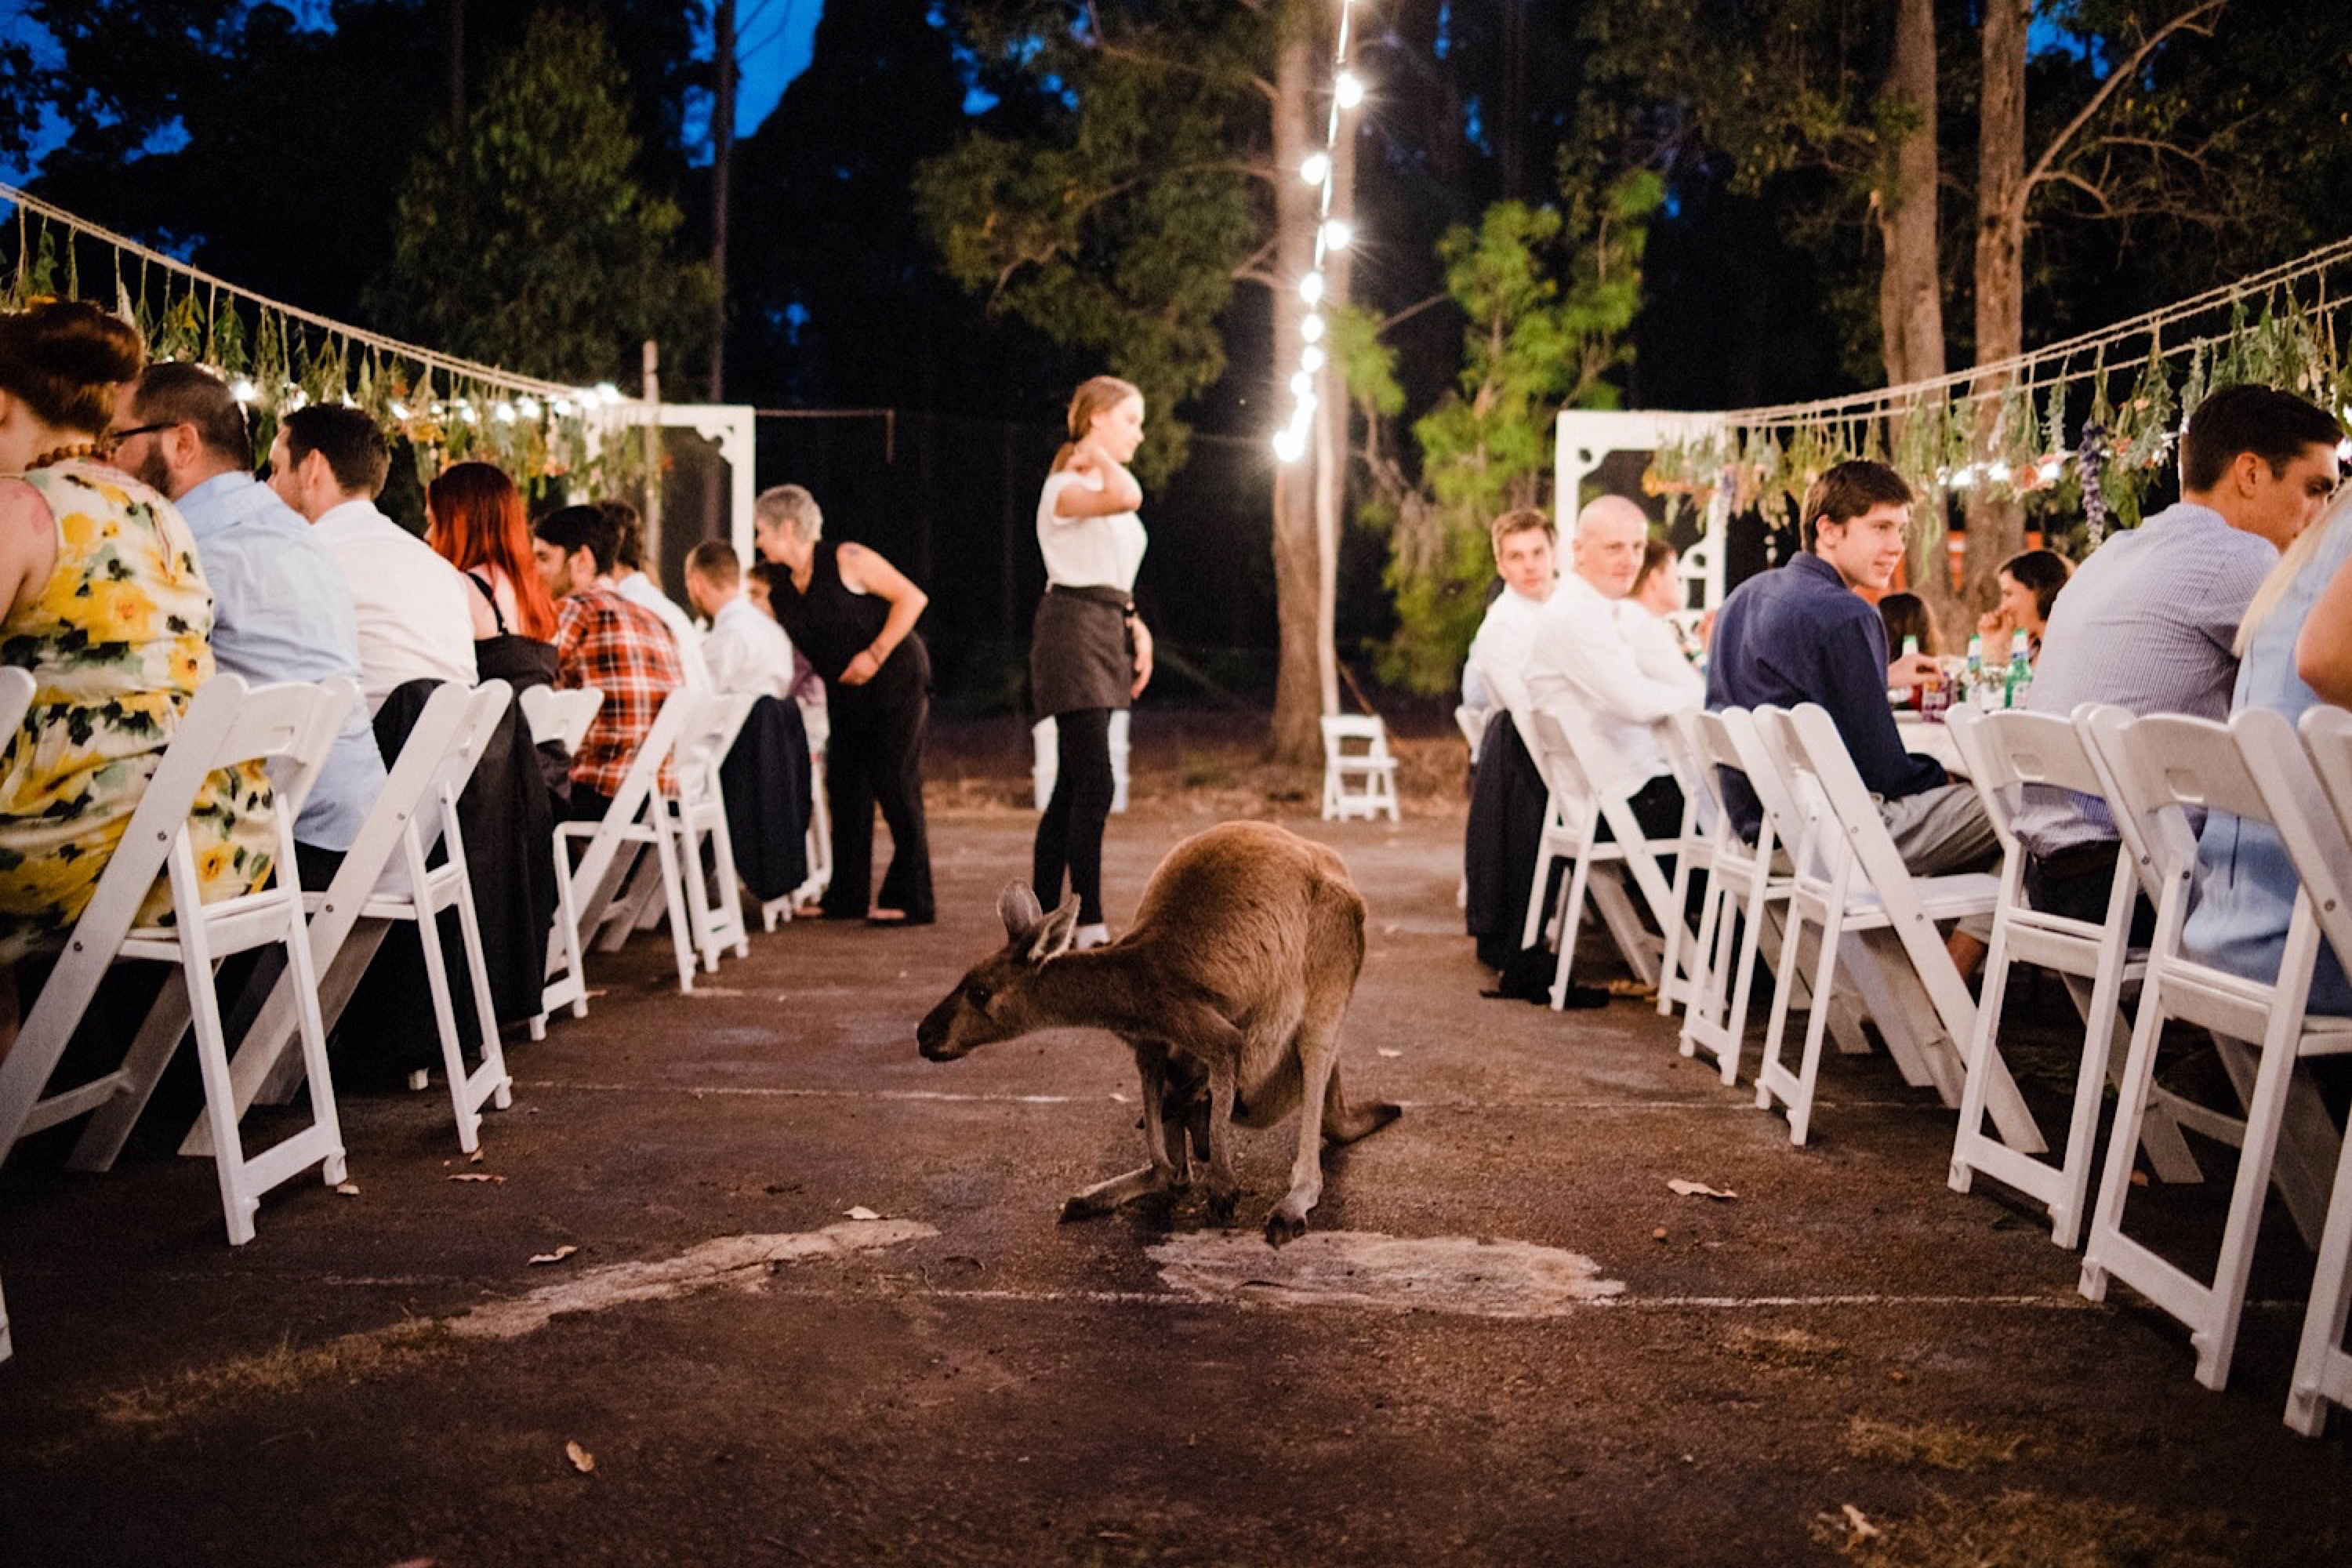 Documentary wedding photography of a kangaroo crashing a wedding reception.